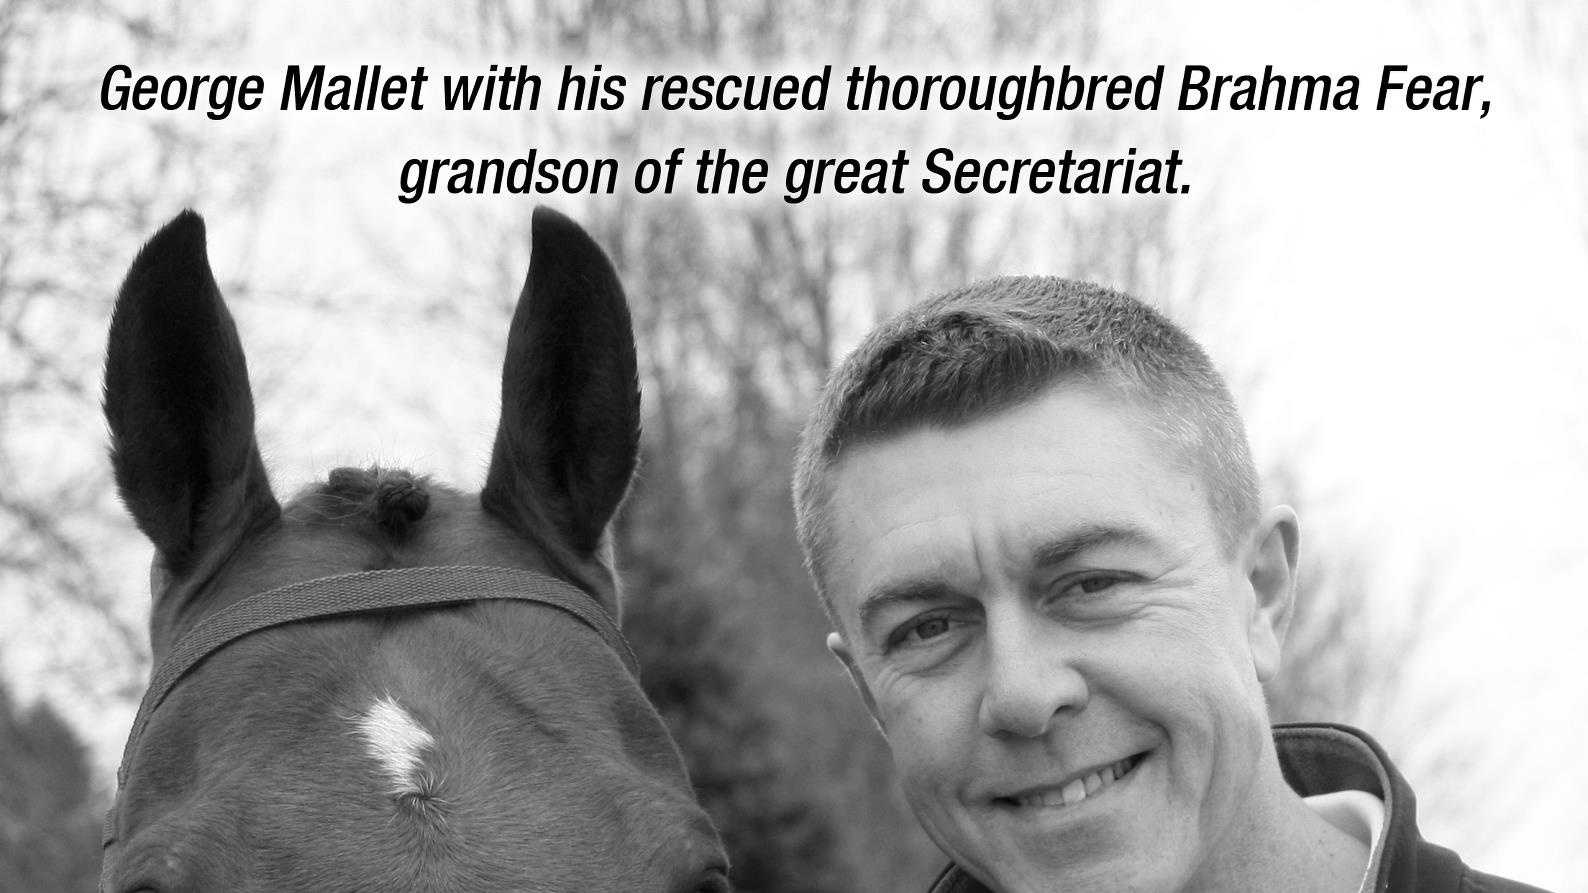 George Mallet and his rescued grandson of Secretariat, Brahma Fear